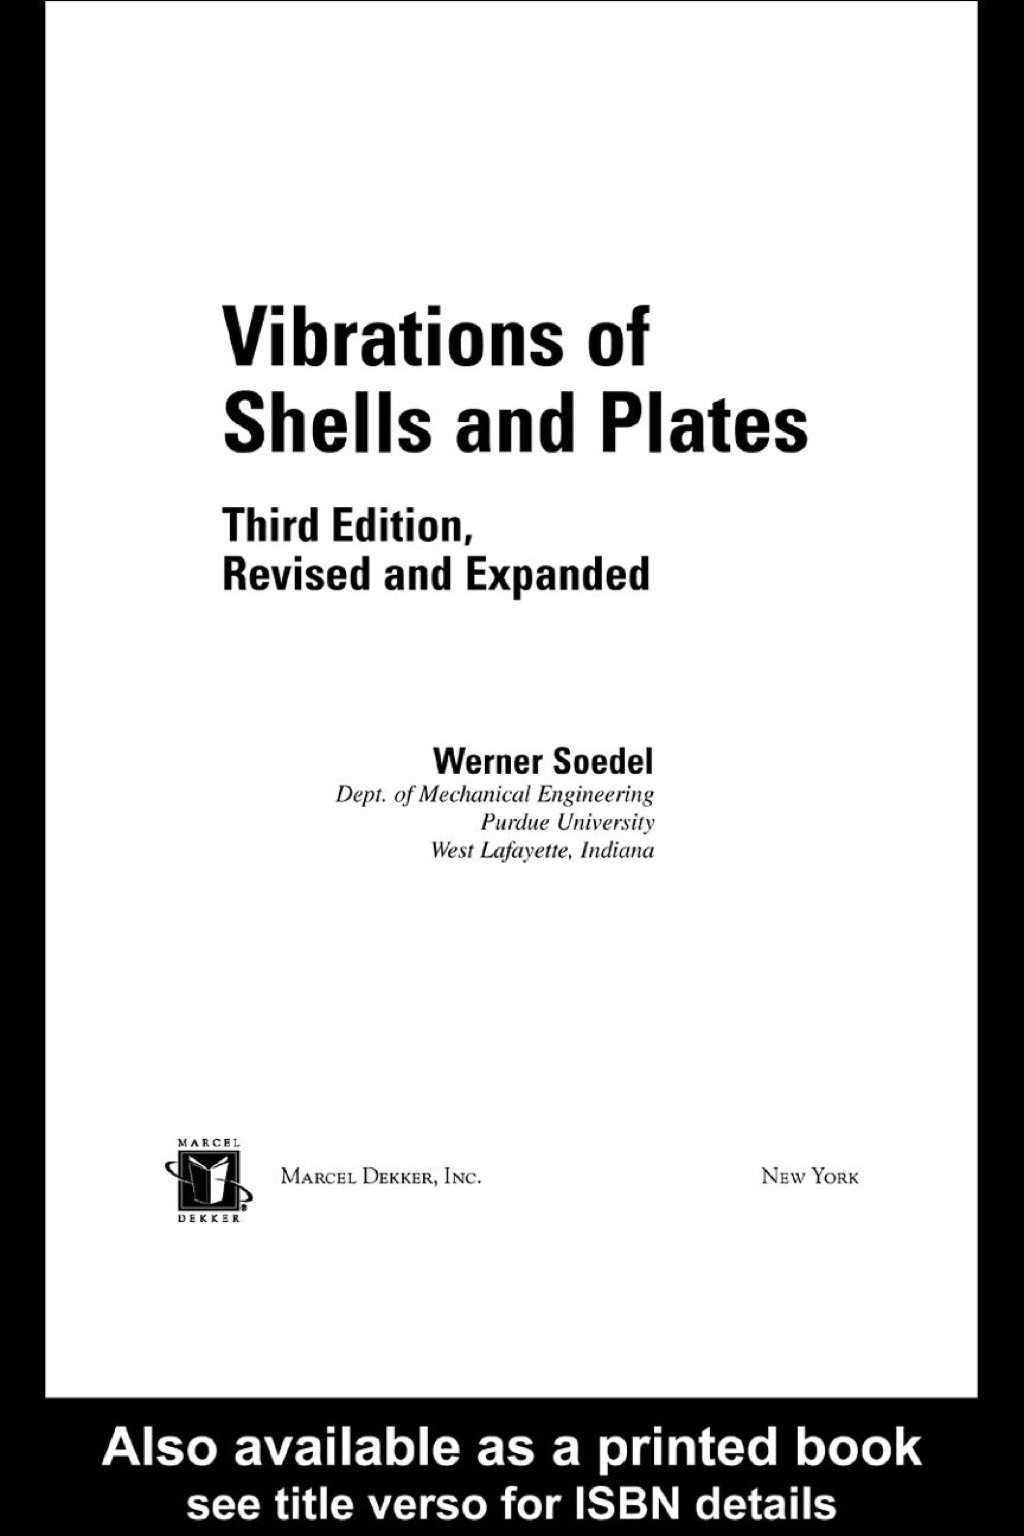 Vibrations of Shells and Plates, Third Edition (ebook) eBooks